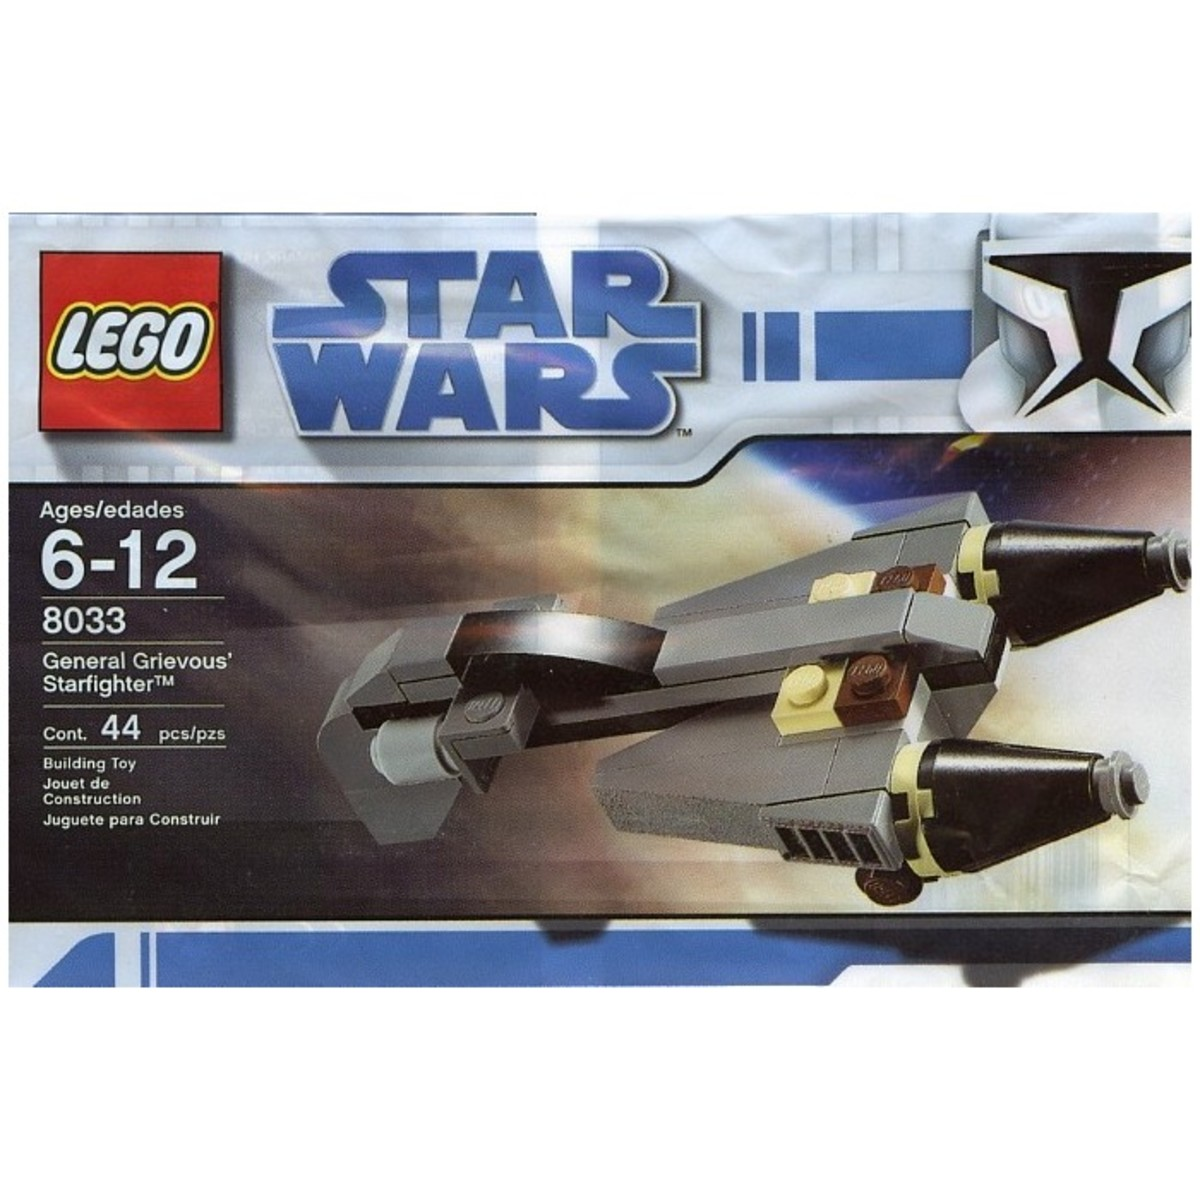 LEGO Star Wars General Grievous Starfighter 8033 Bag